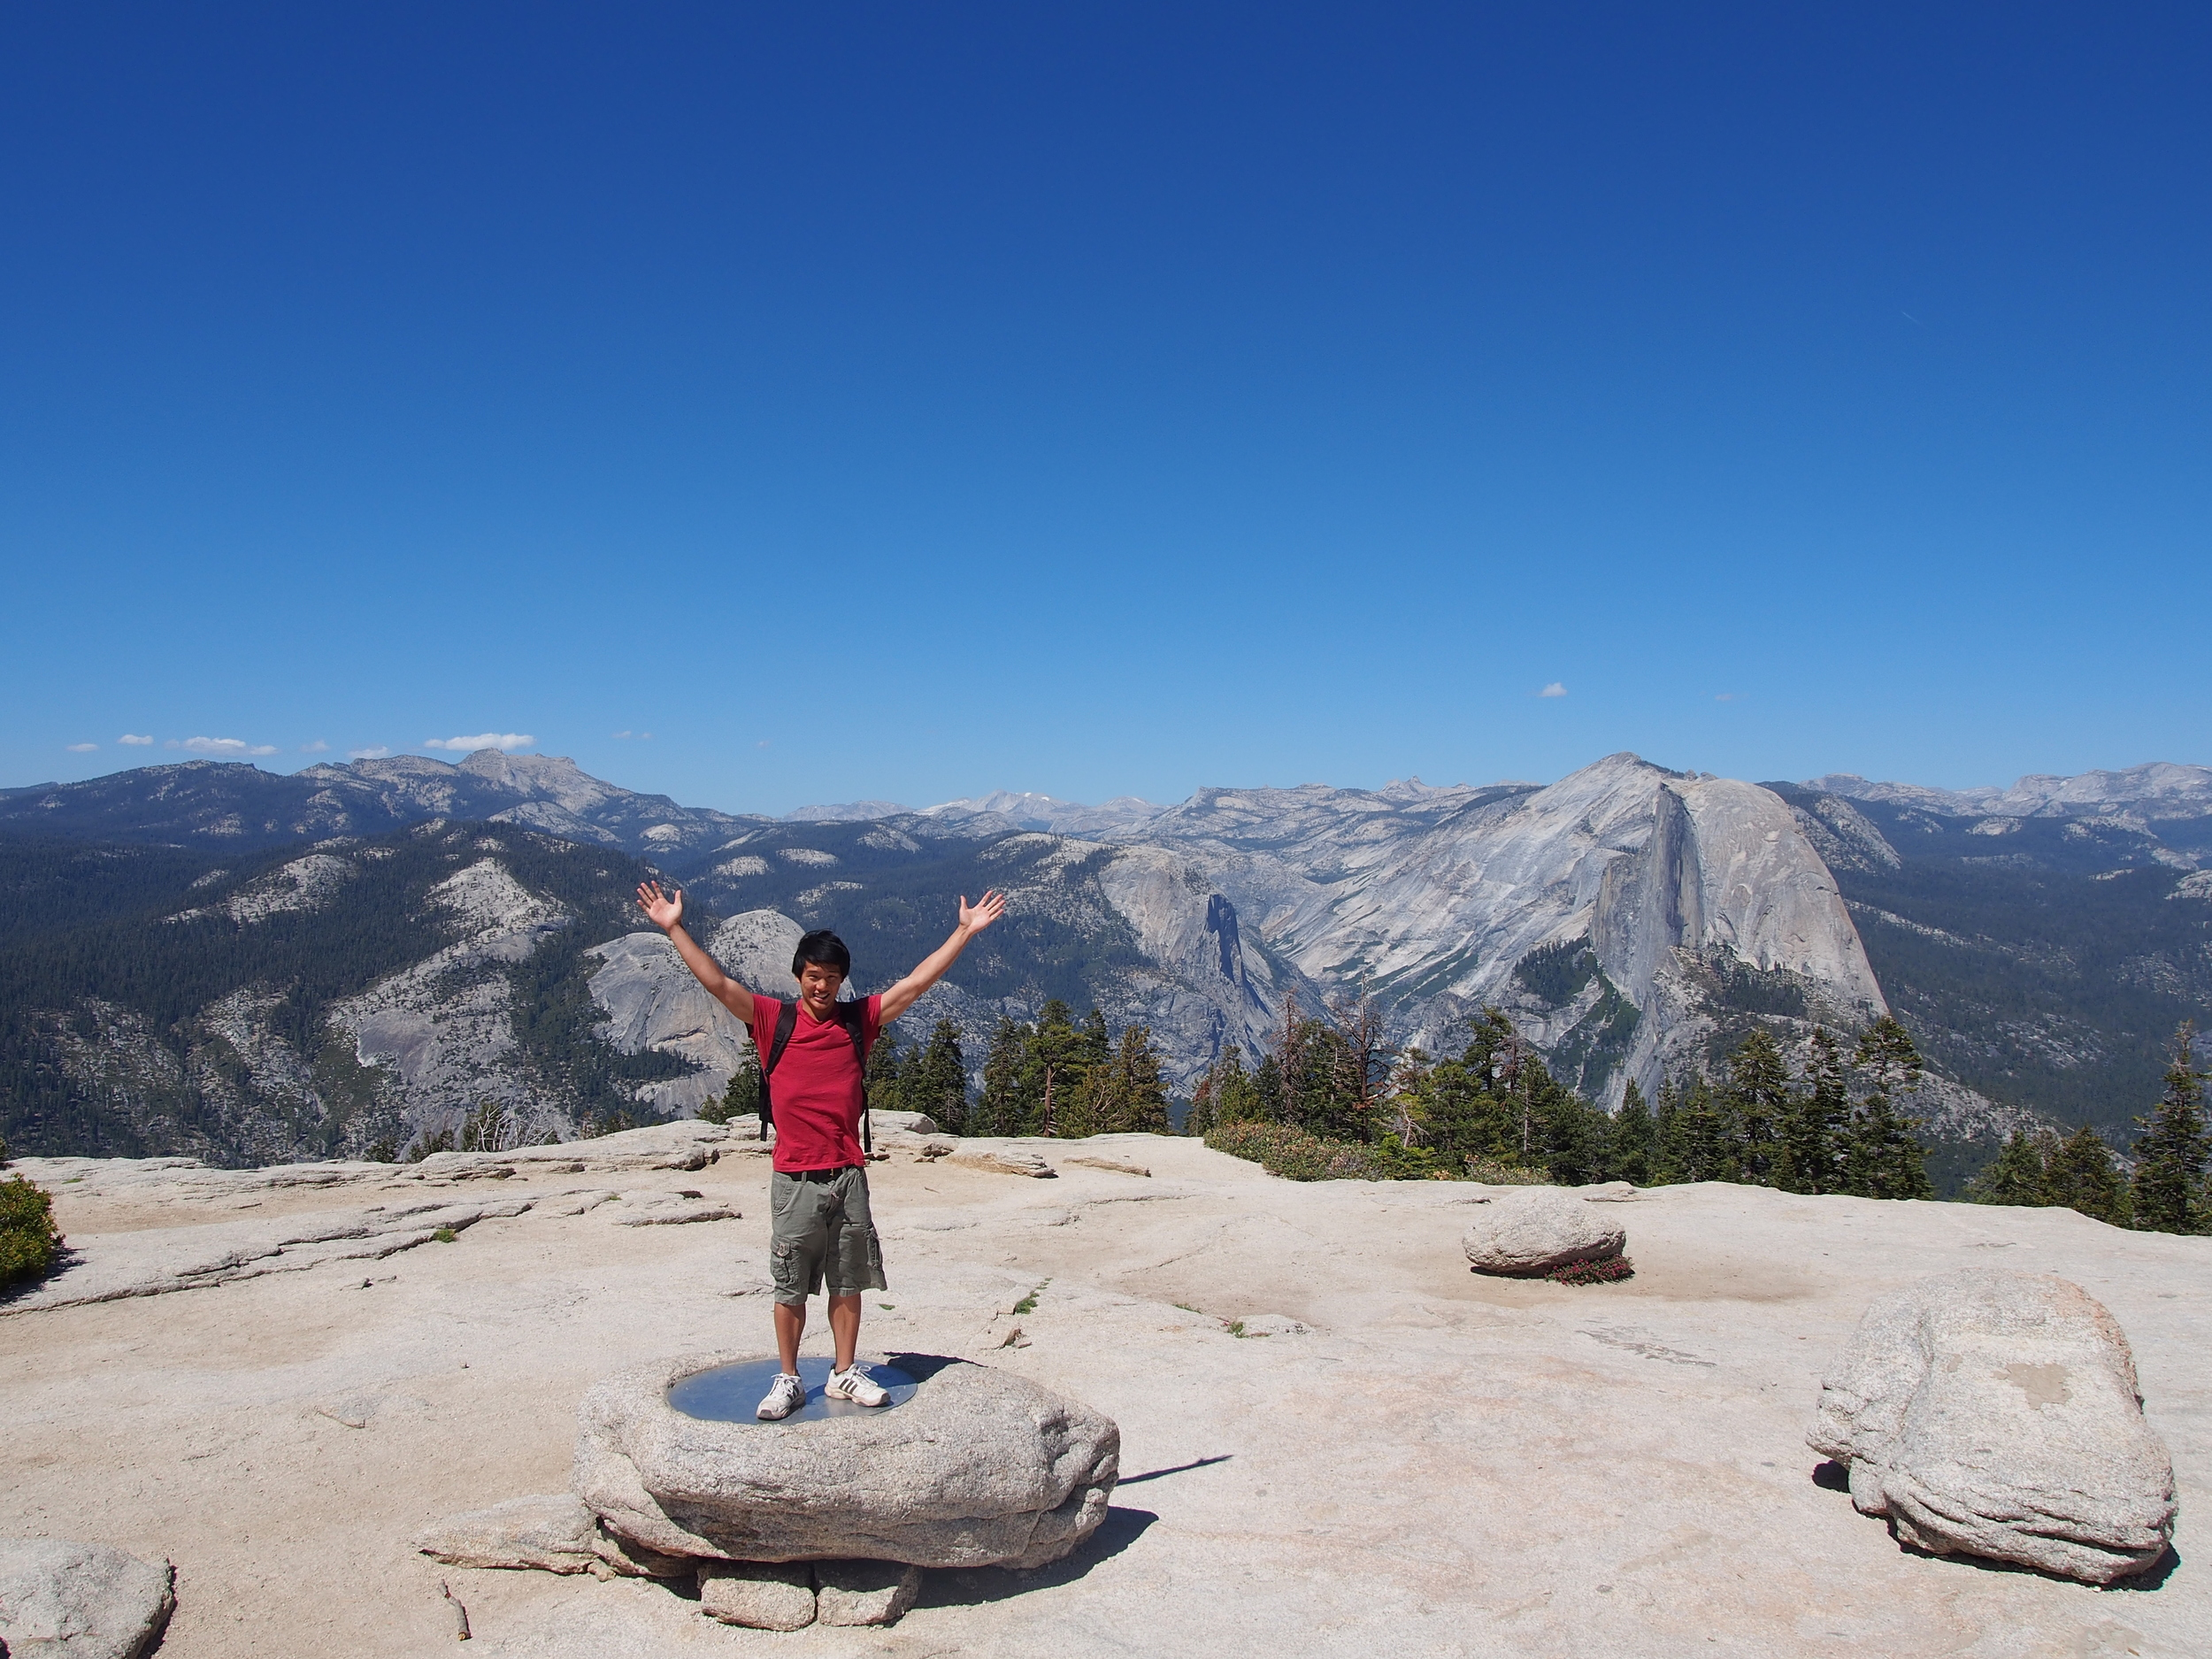 From left to right you can see: Tanaya Peak, Cathedral Peak, Cloud's Rest, and Half Dome